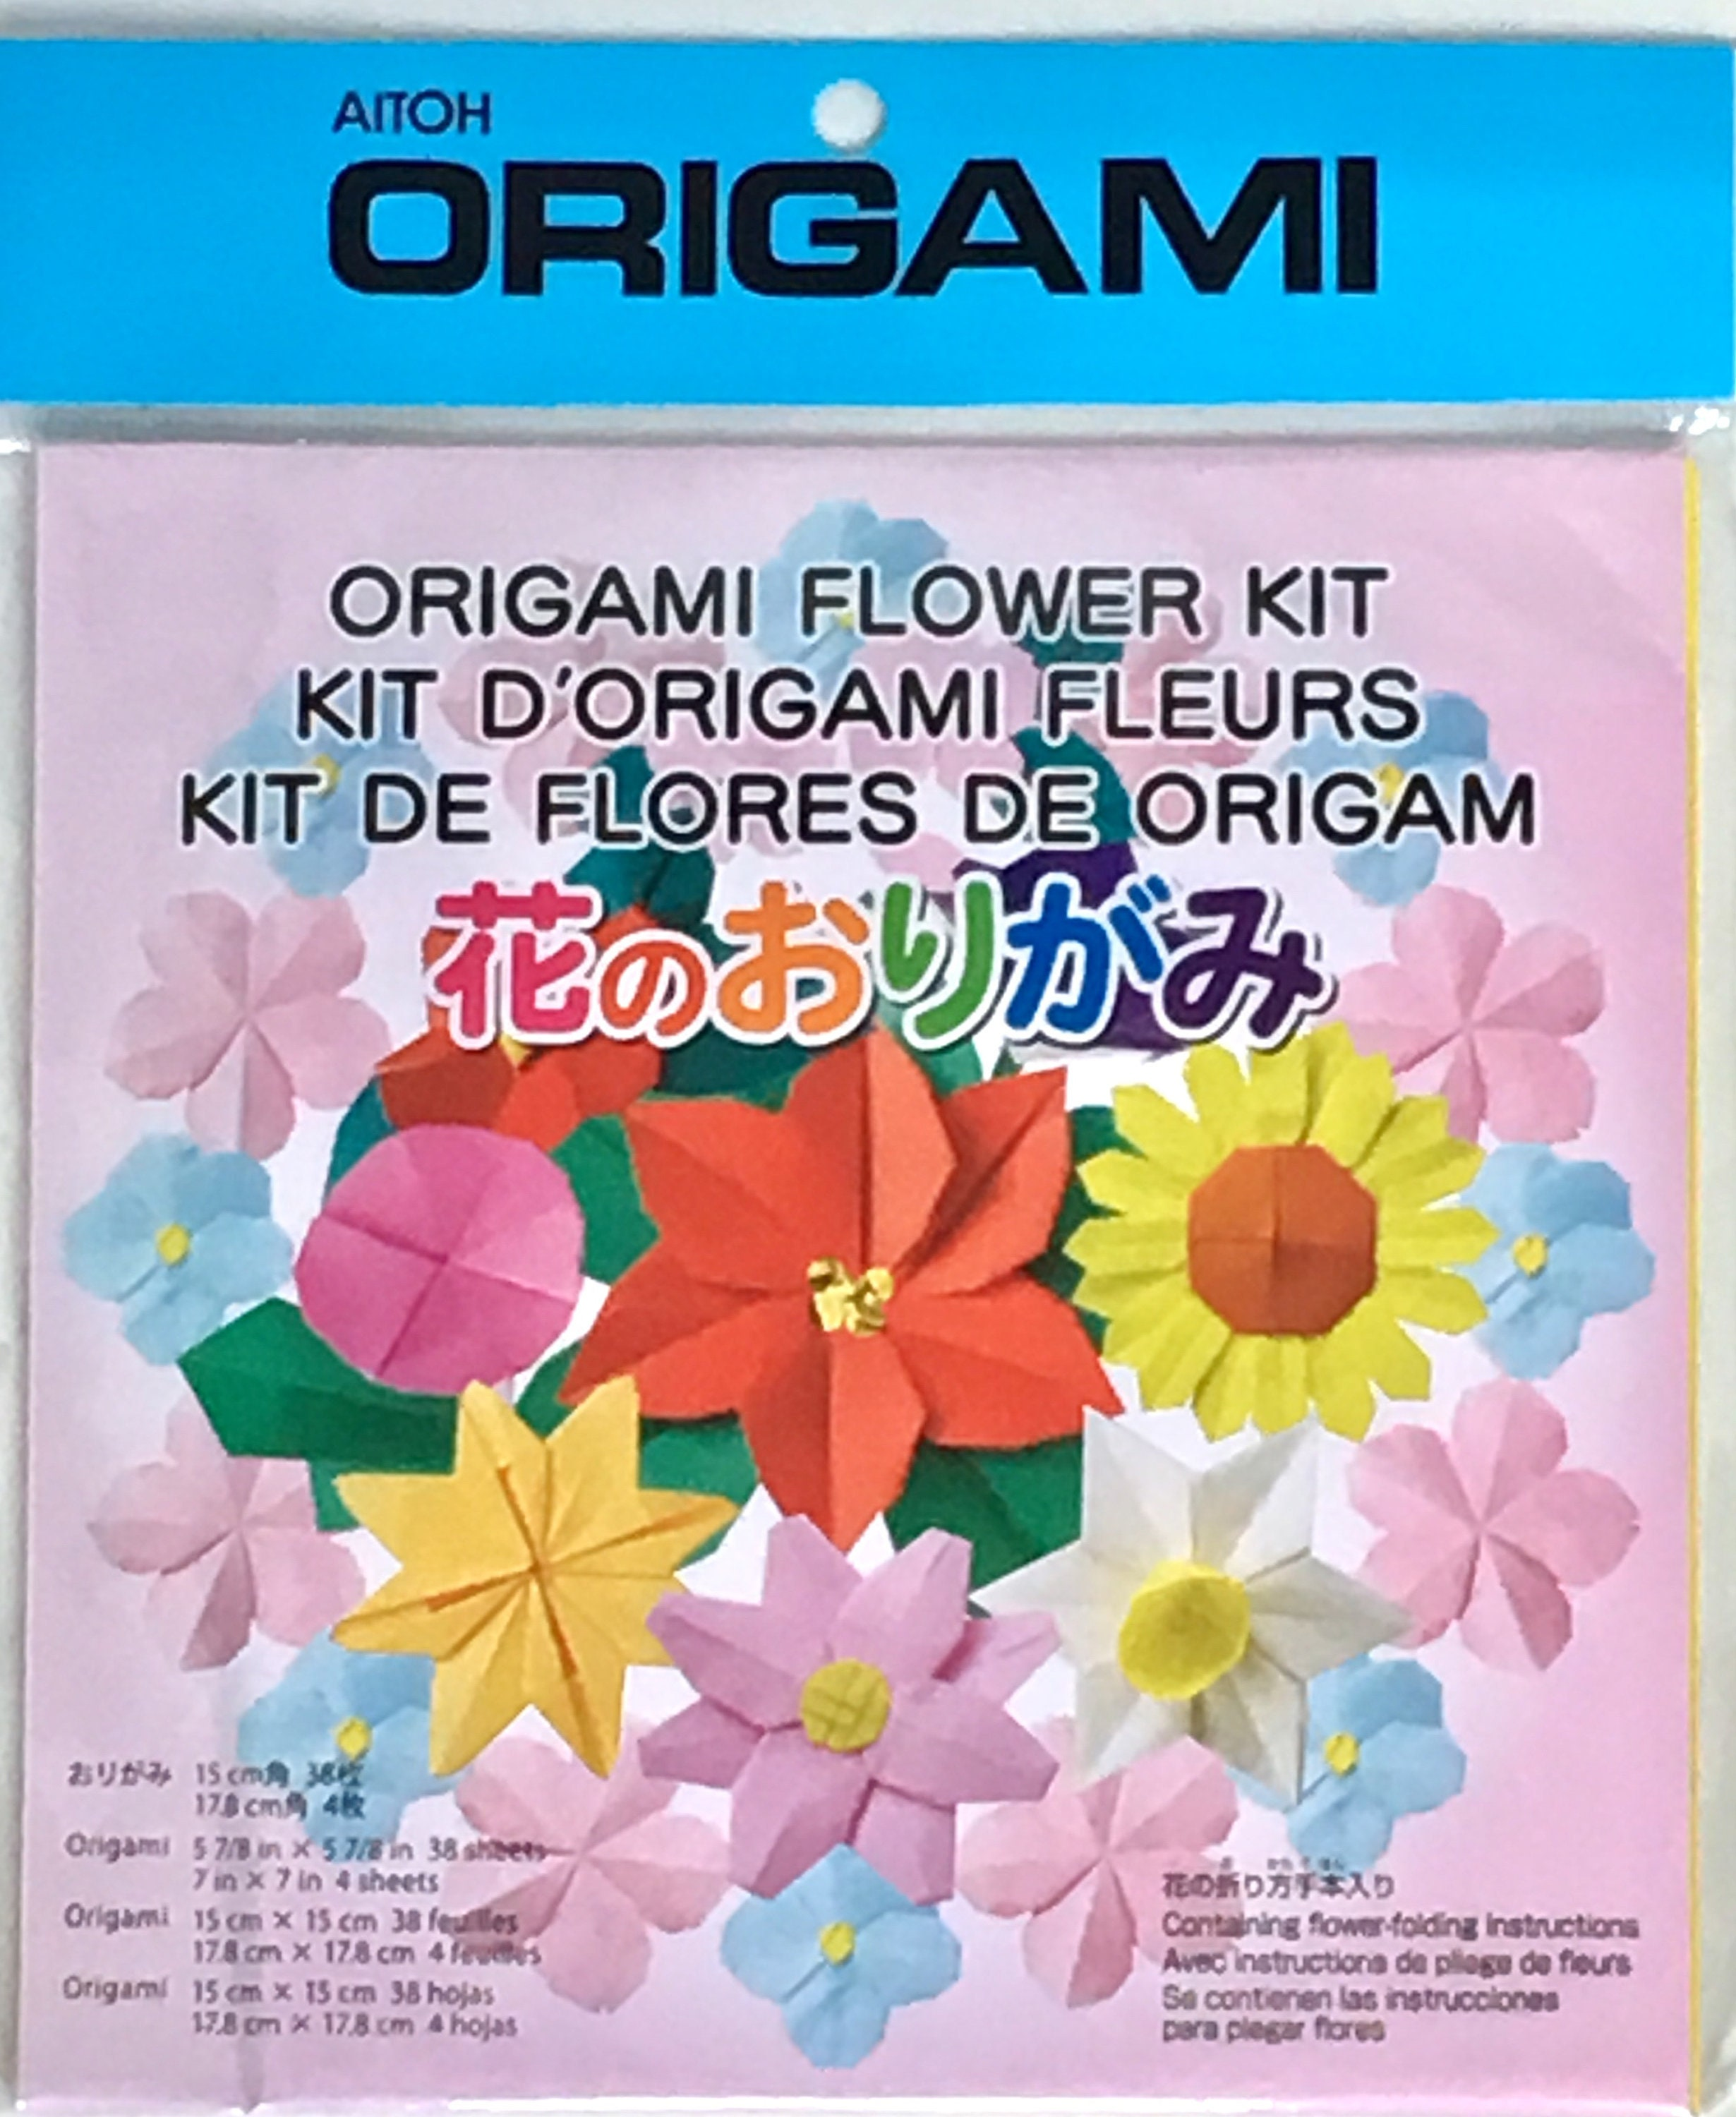 Origami Flower Origami Papers Origami Set Origami Art Kit Etsy